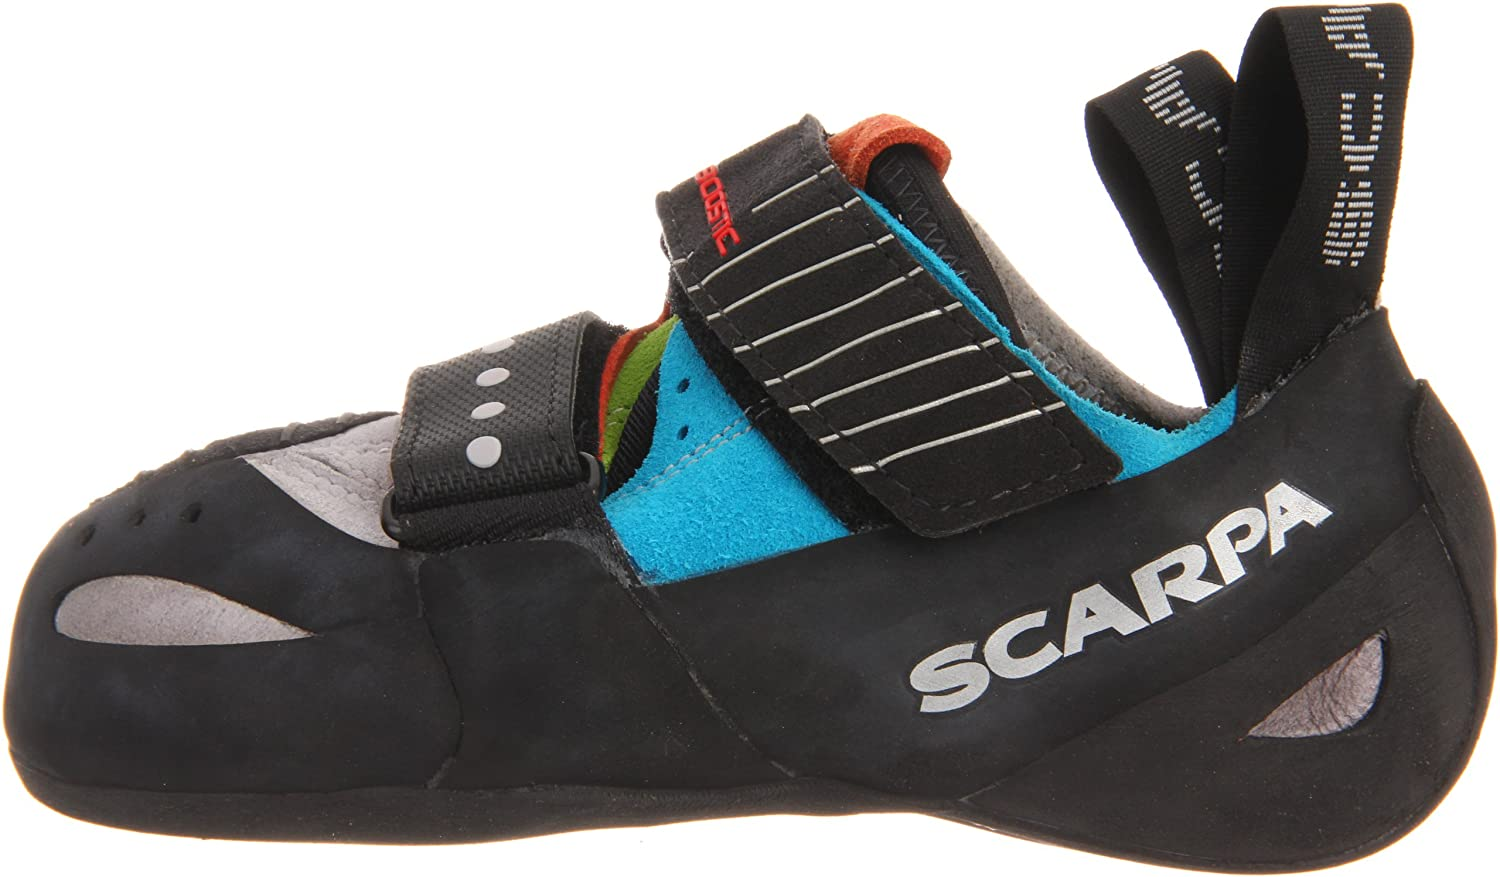 SCARPA Boostic US/Women's Climbing Shoe B007HUOXYA 43 EU/Men's 10 M US/Women's Boostic 11 M US|Cyan/Spring 6c0354